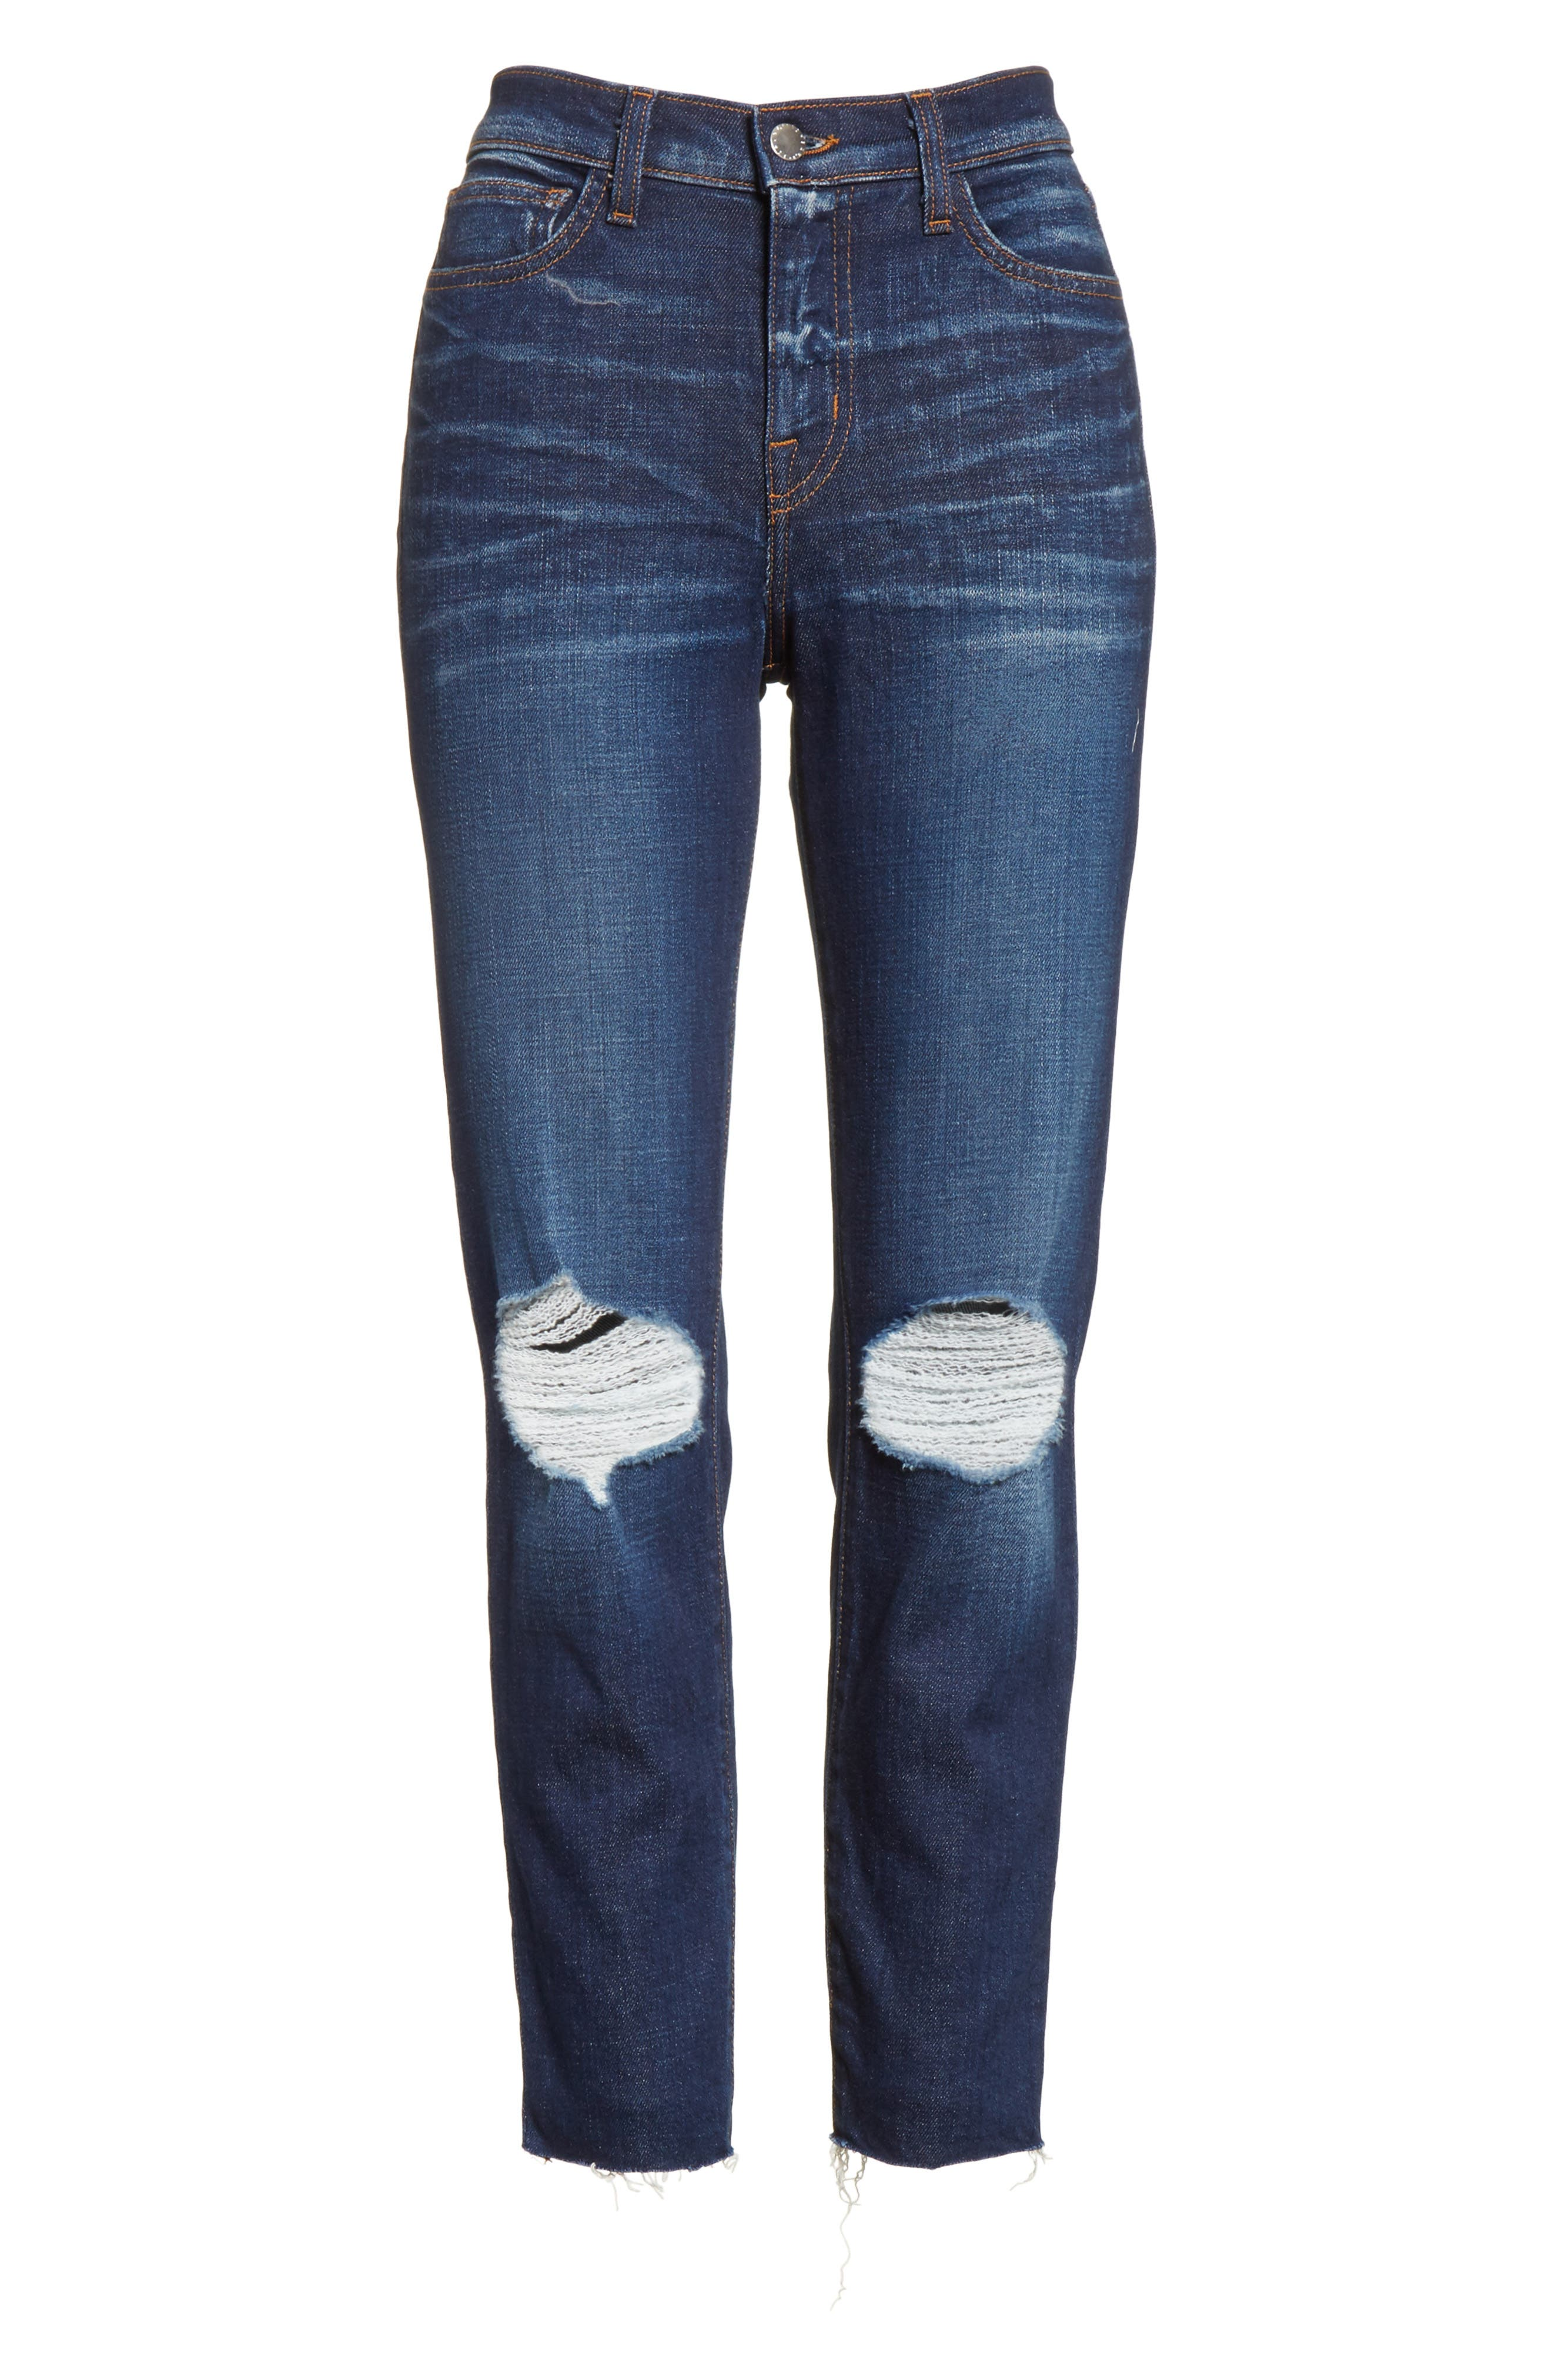 Abigail French Slim Ripped Skinny Jeans,                             Alternate thumbnail 6, color,                             401